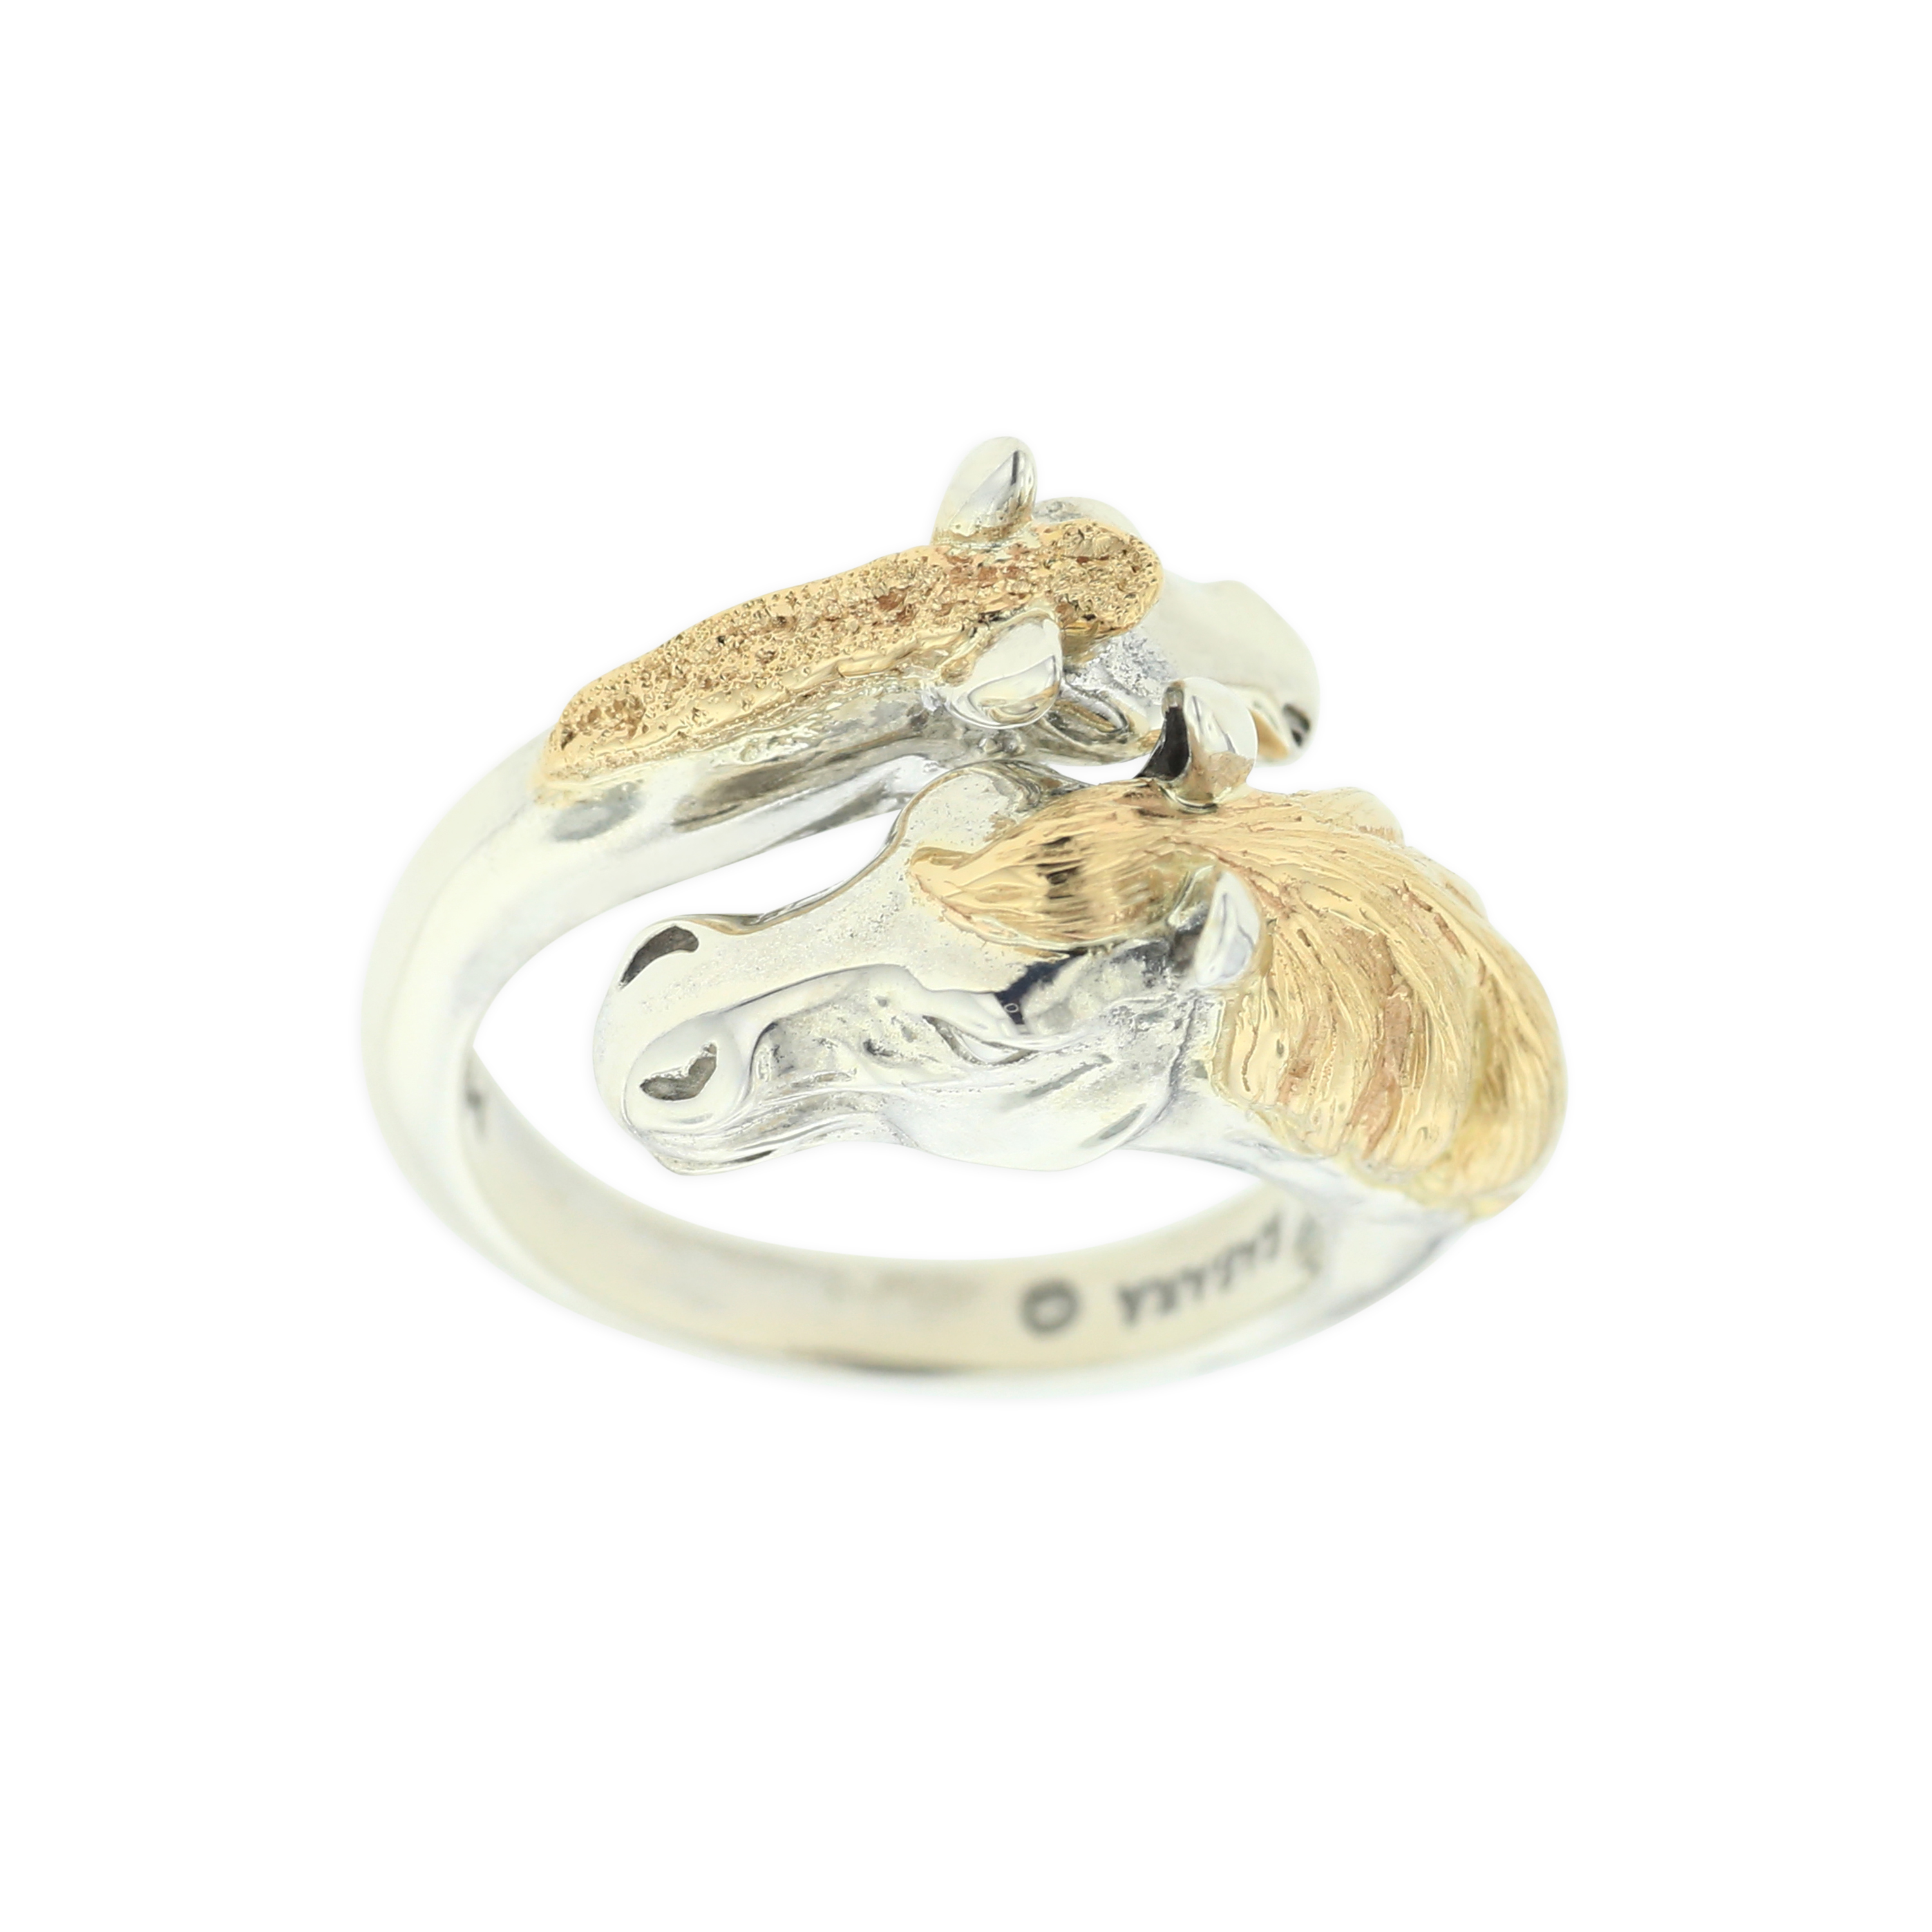 14 KT yellow gold and sterling silver ring